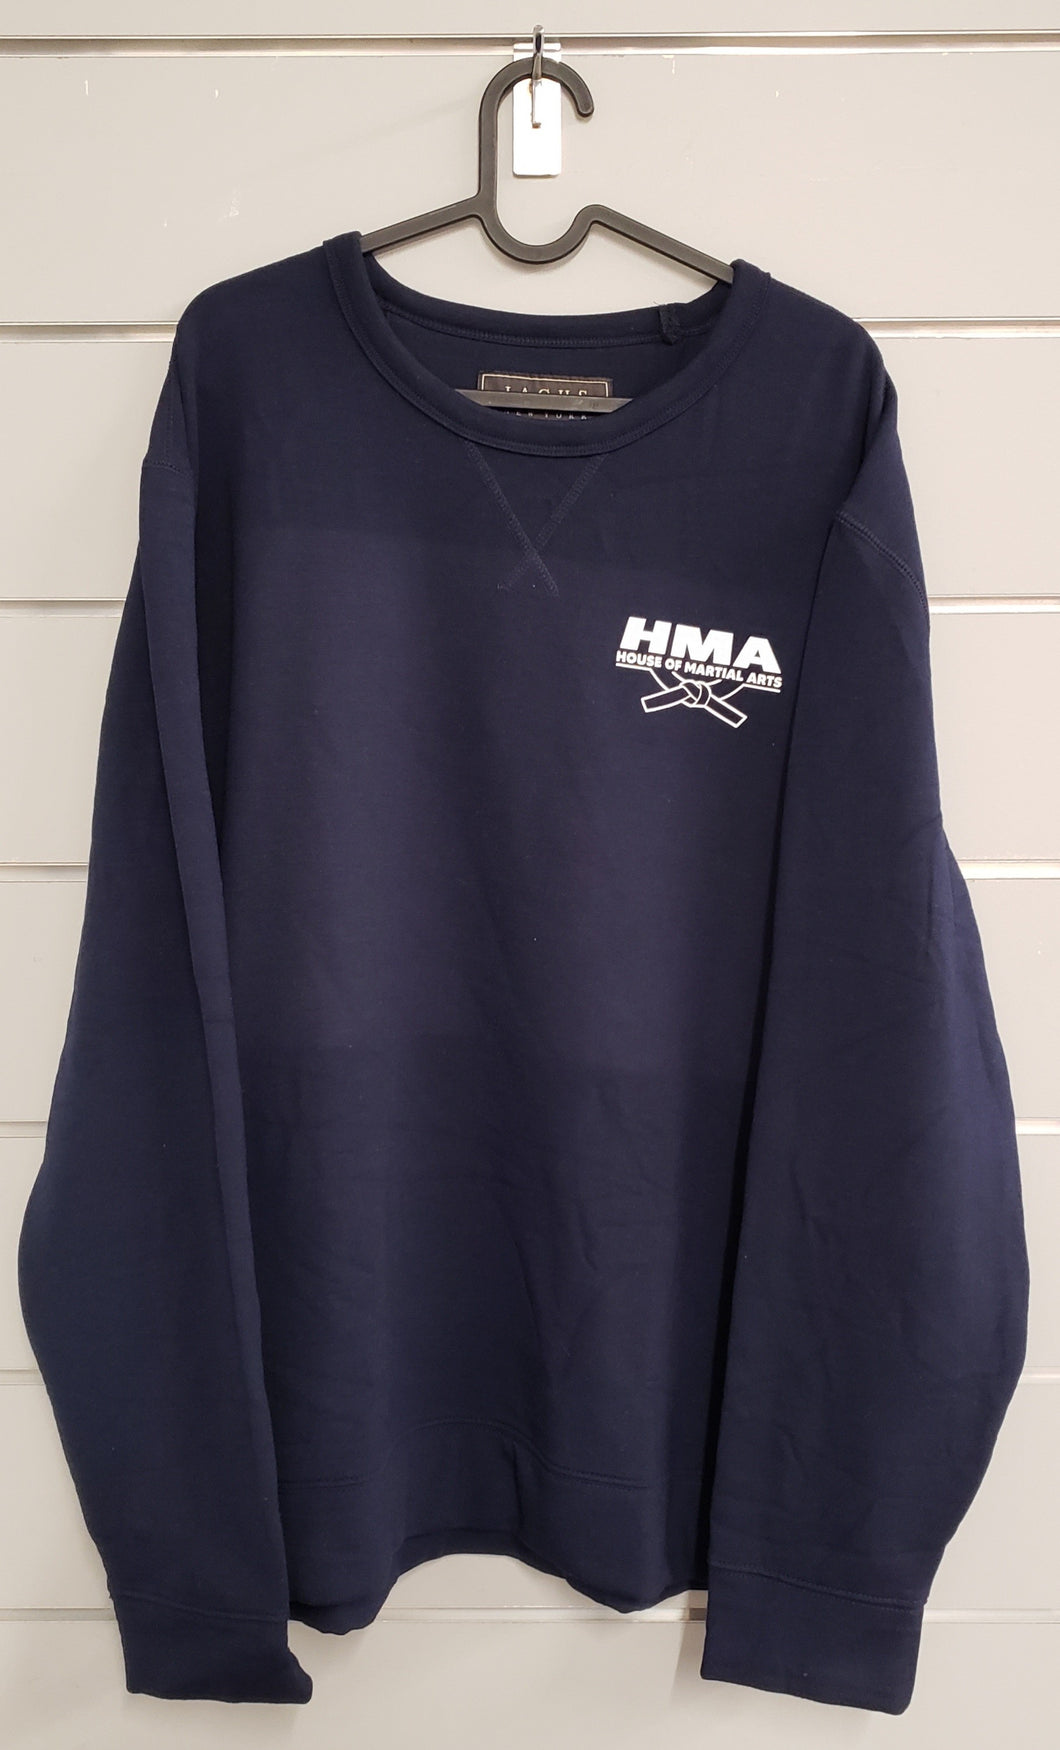 Men's Crewneck Sweater - Limited Edition